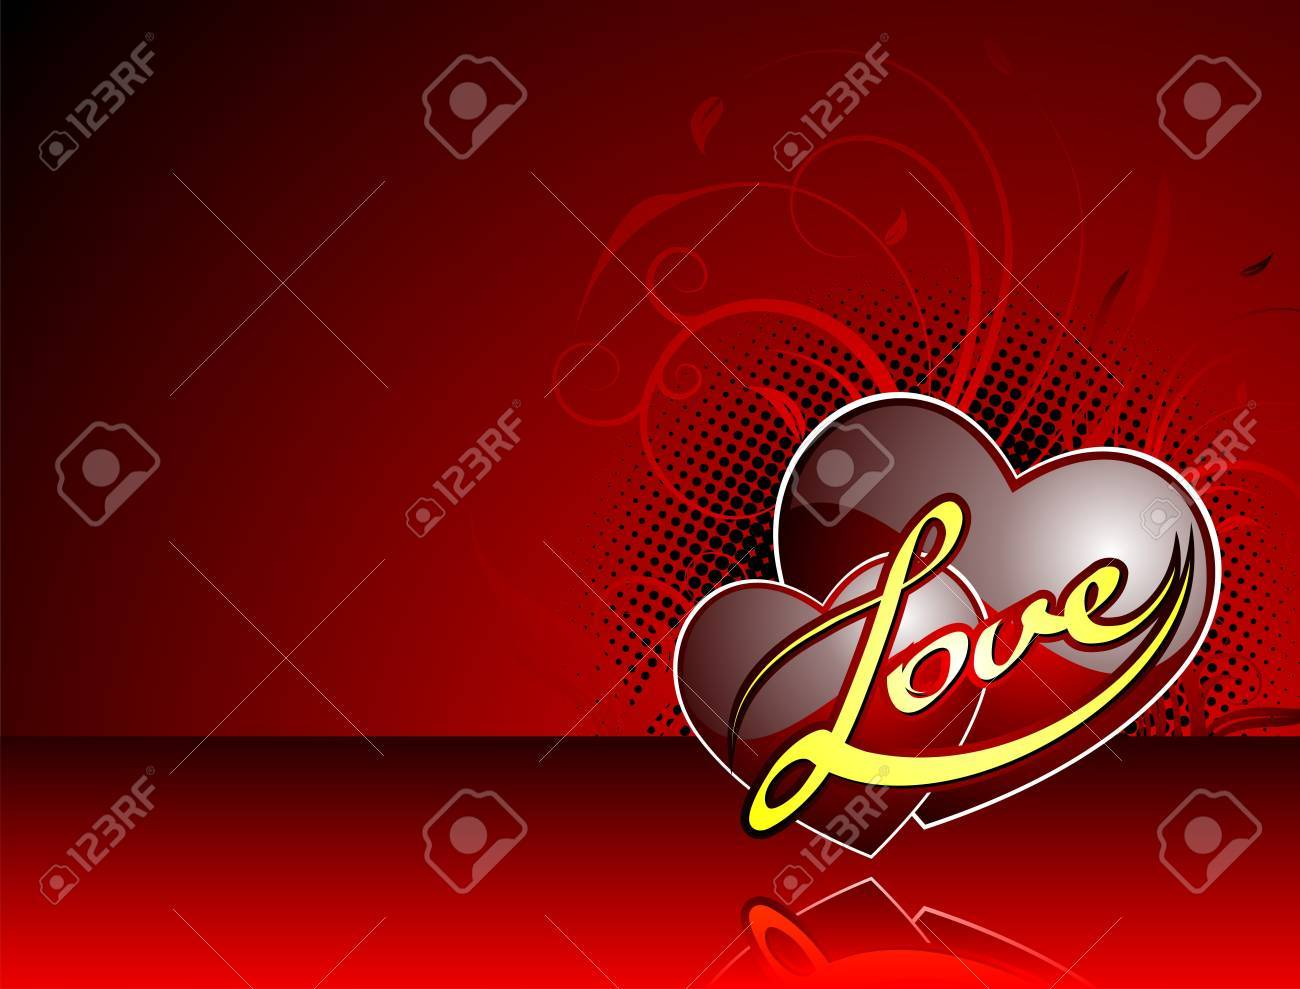 Valentine's day illustration with glossy red heart and Love title. Stock Vector - 7316274